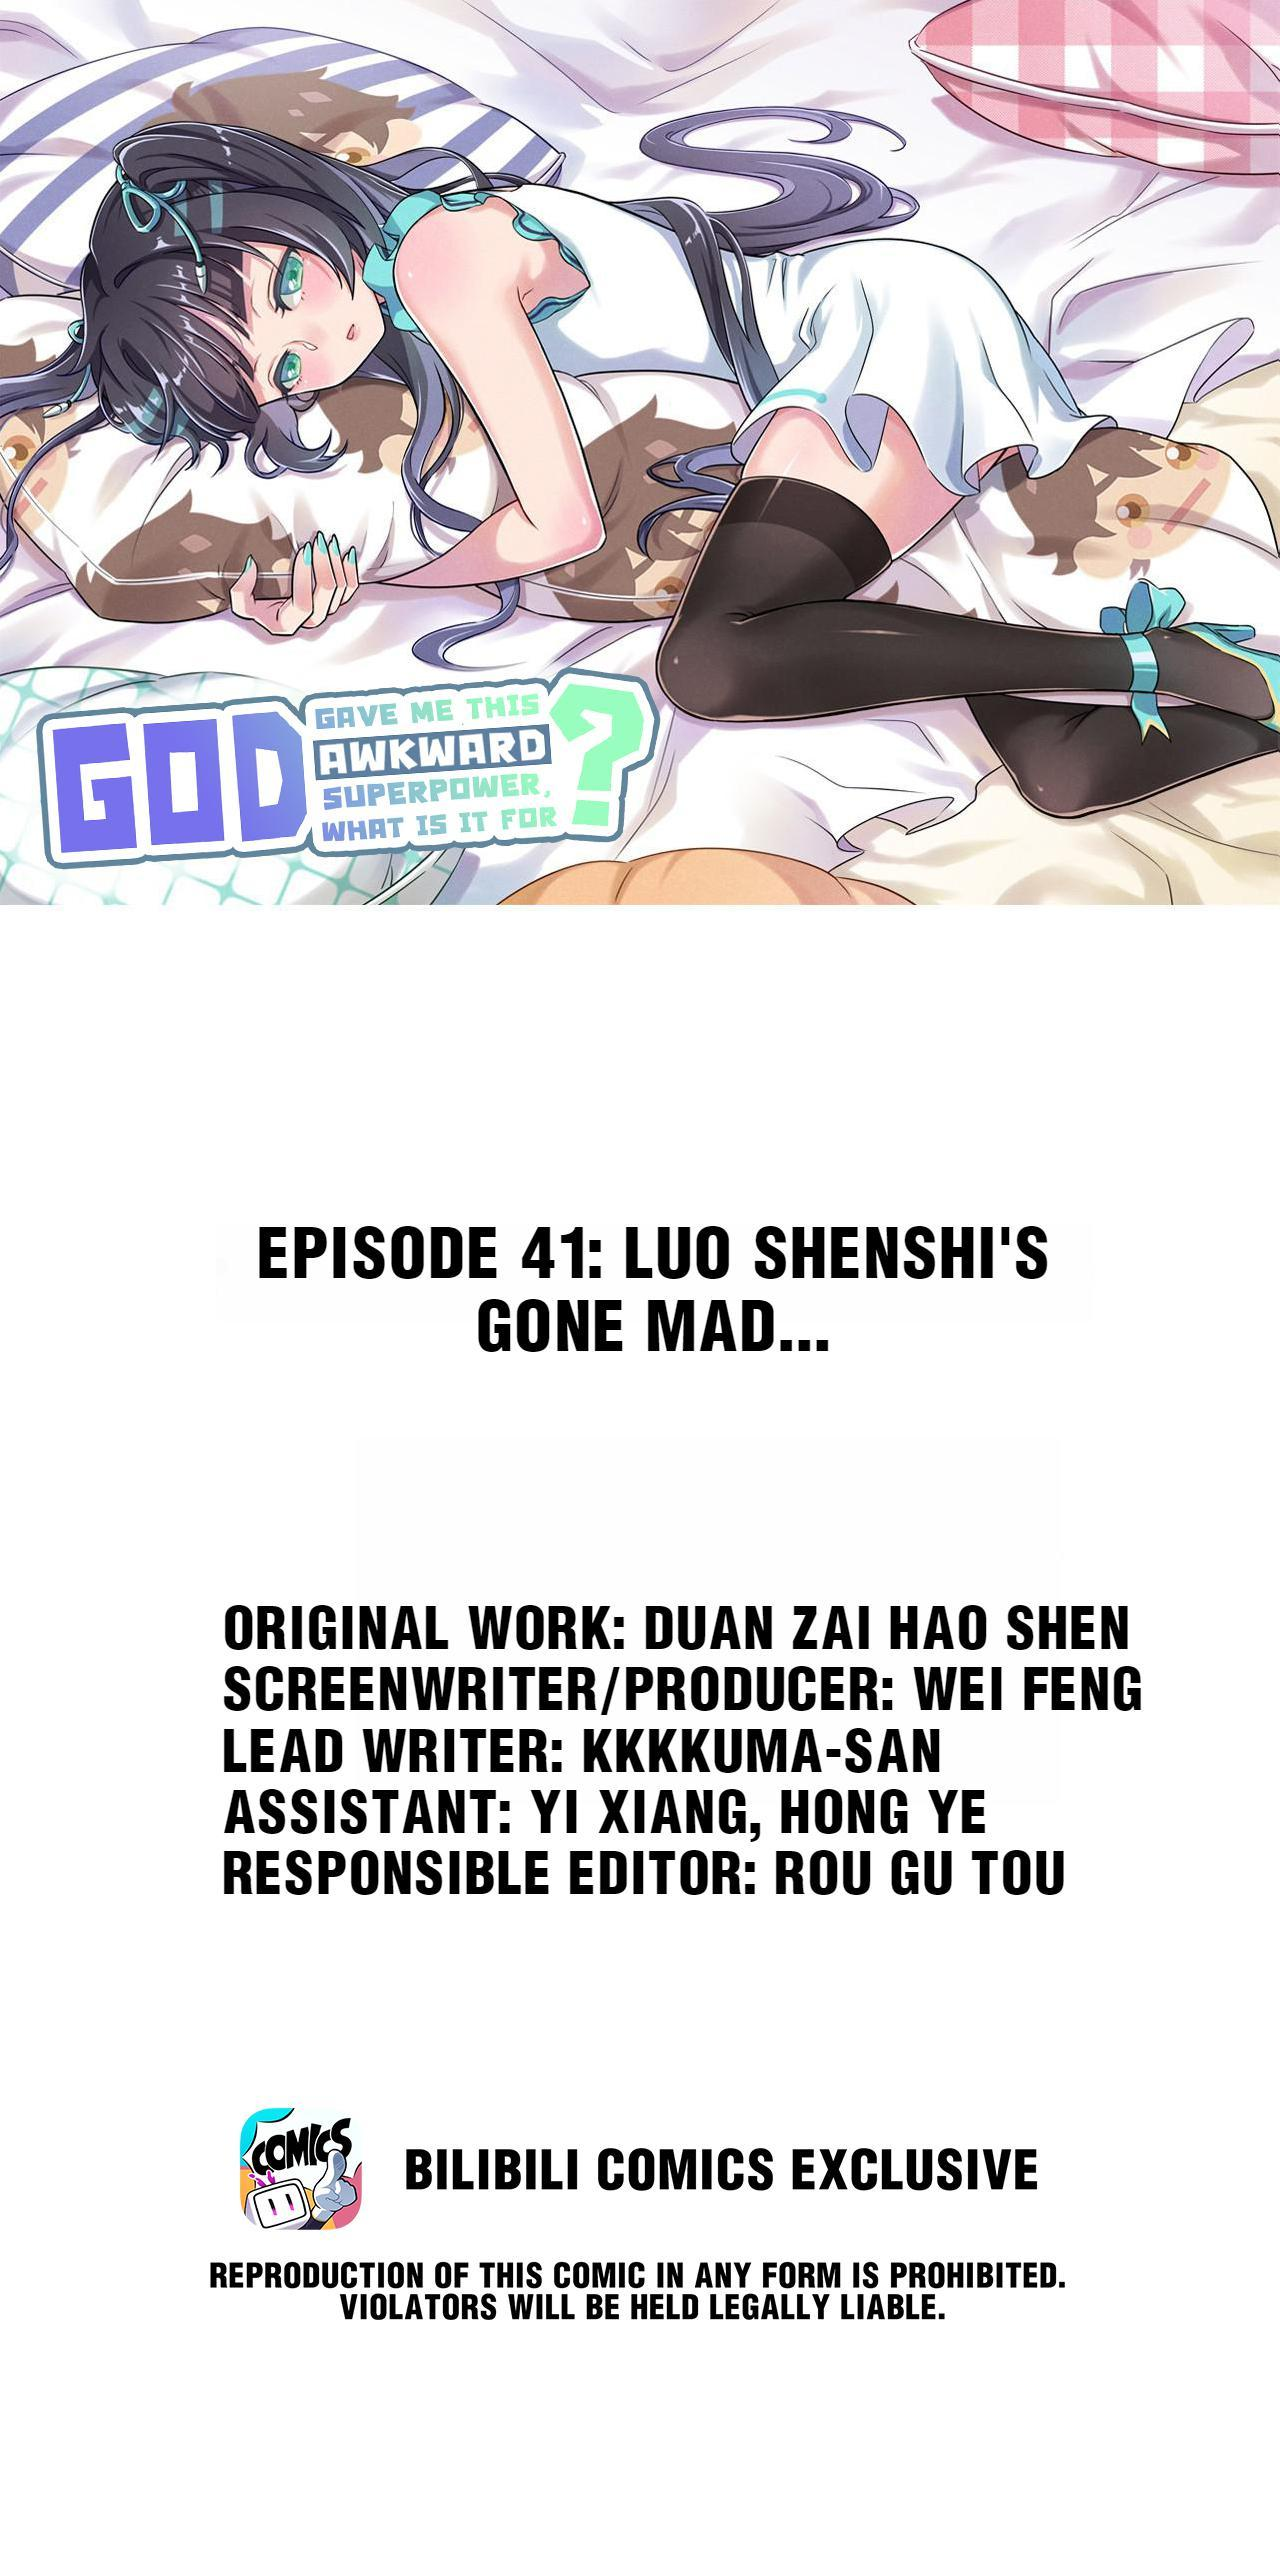 God Gave Me This Awkward Superpower, What Is It For? Chapter 41: Luo Shenshi's Gone Mad... page 1 - Mangakakalots.com